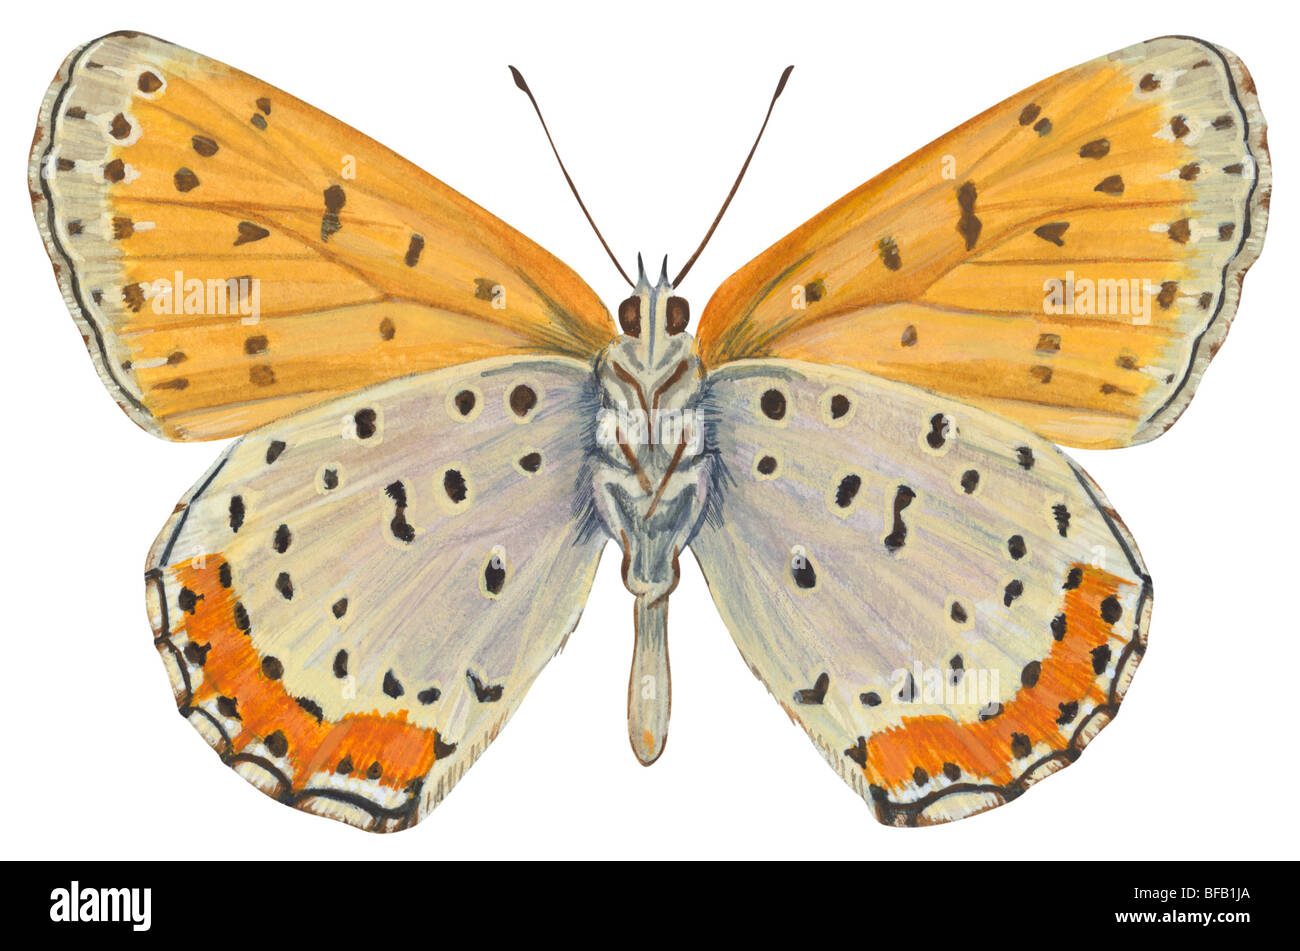 Bronze copper butterfly - Stock Image